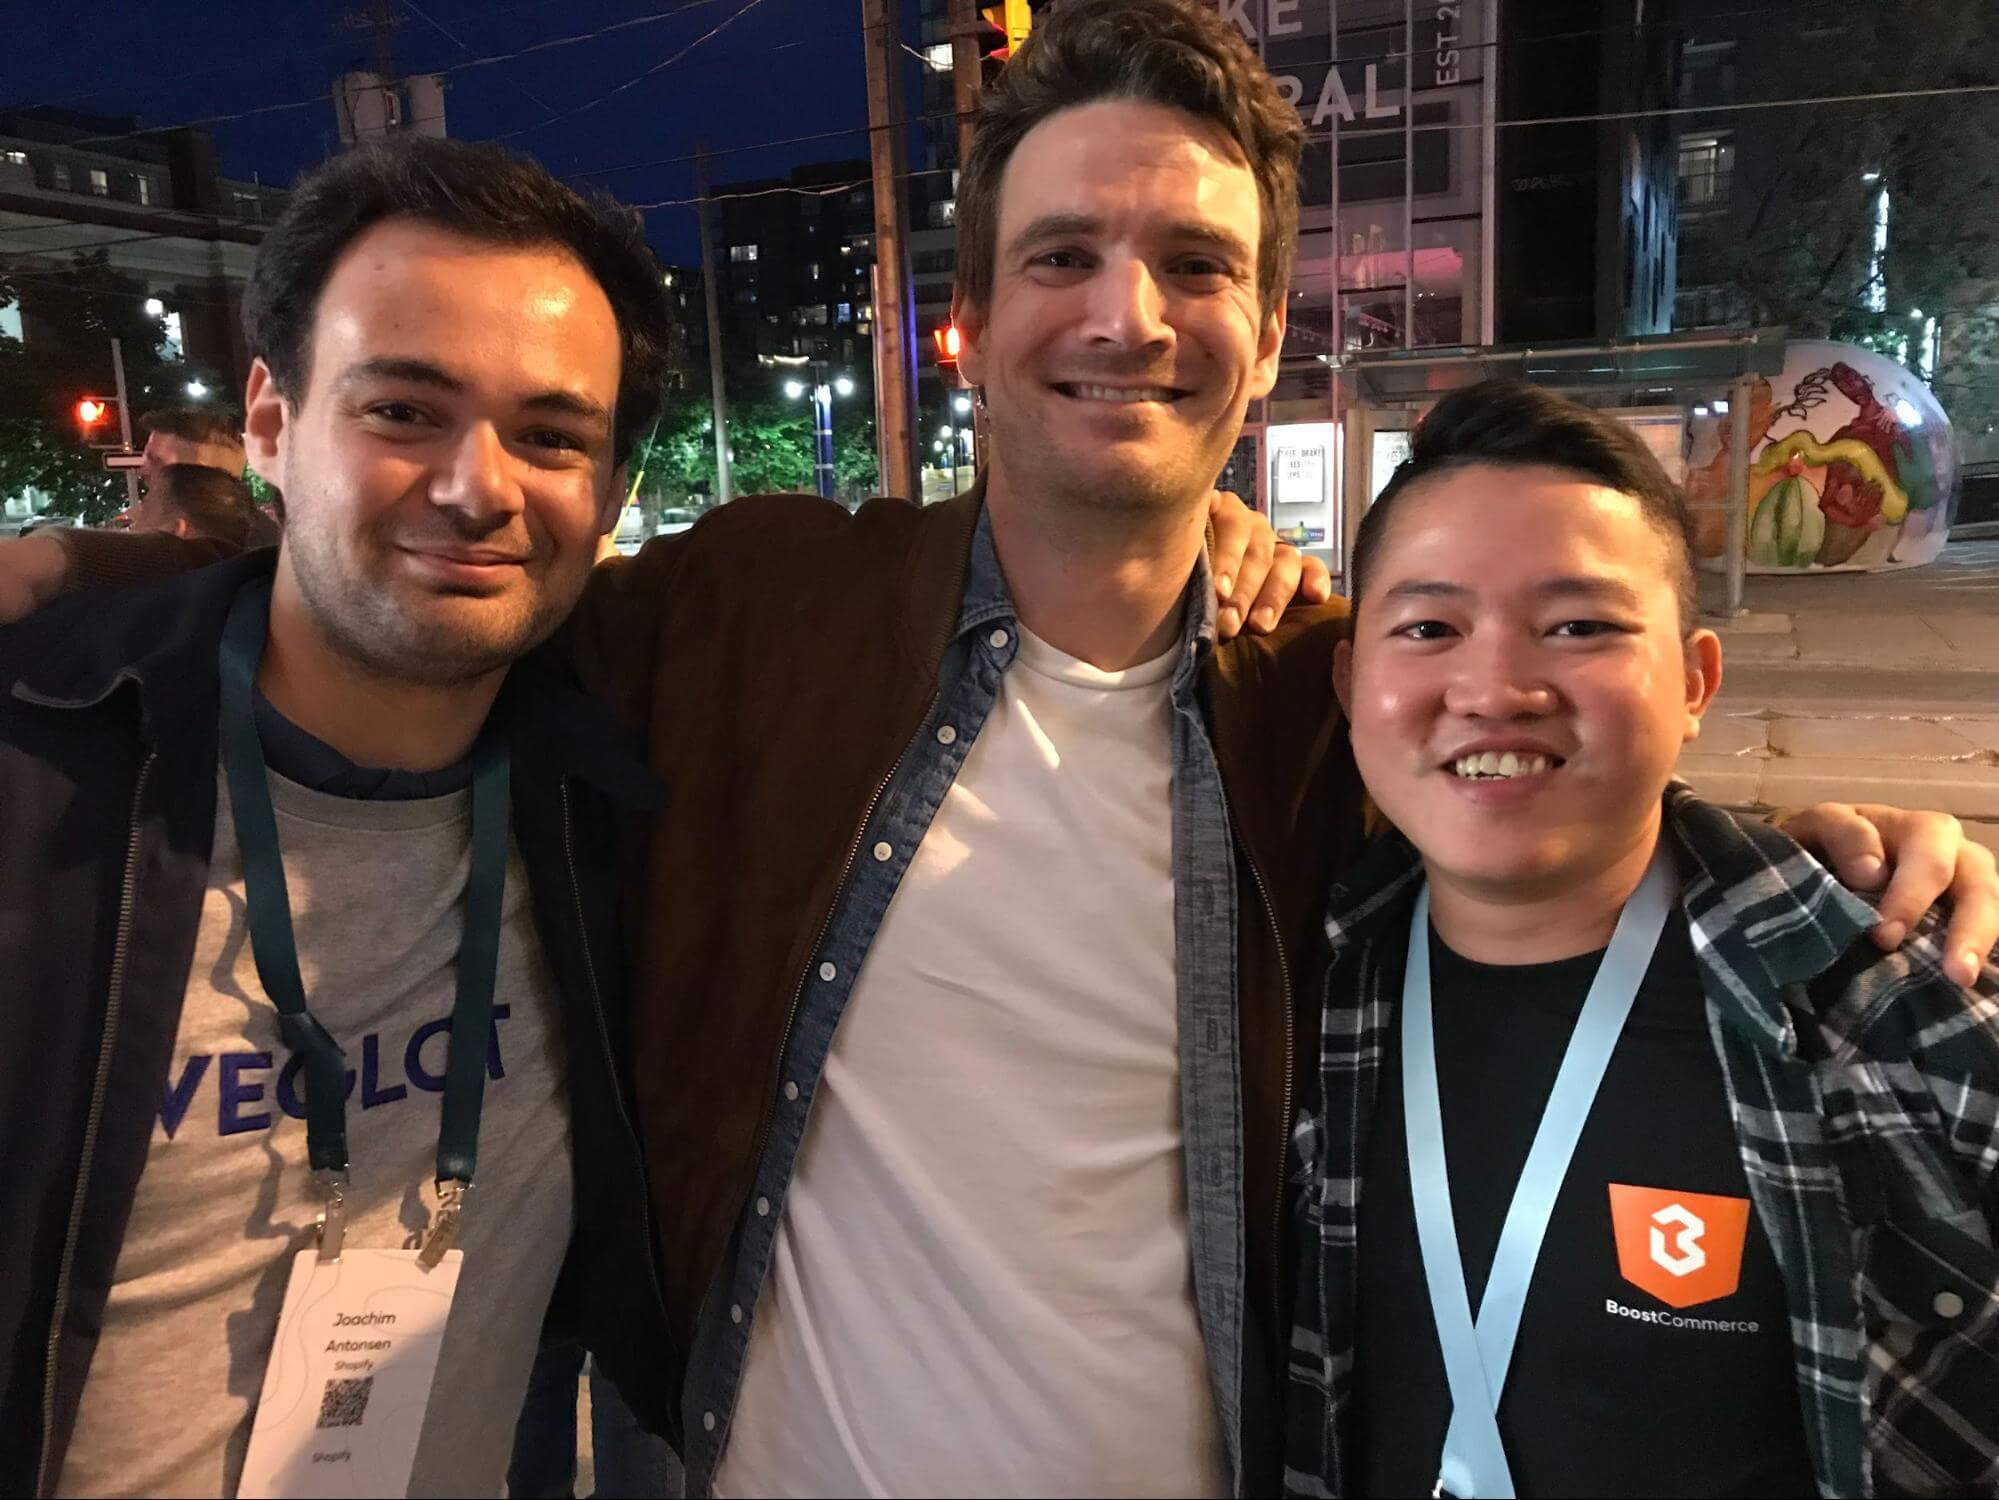 boostcommerce weglot shopify unite 2019